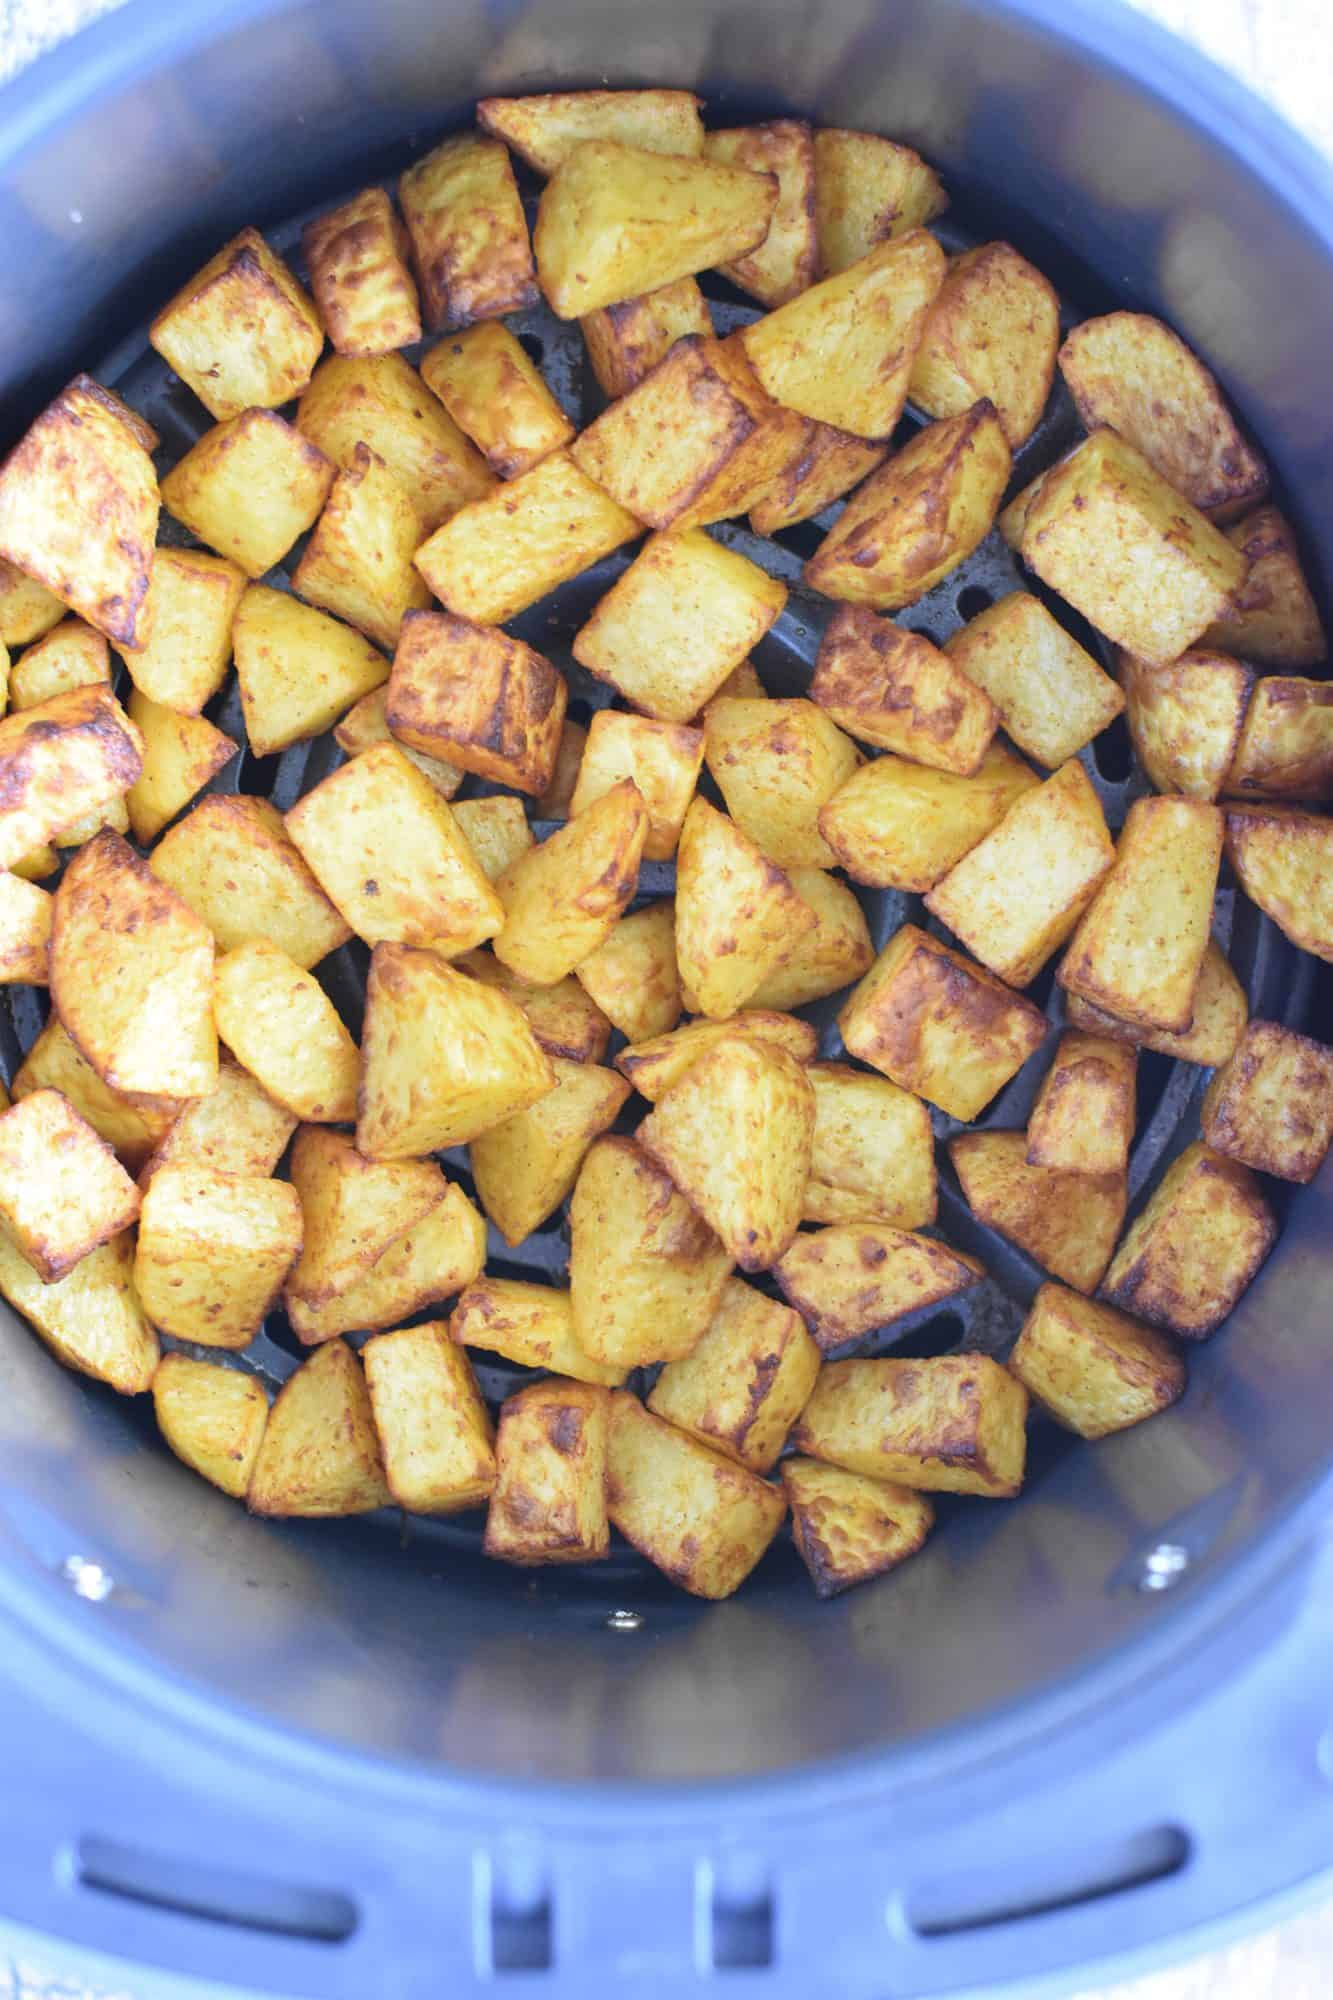 Potatoes in the air fryer after cooking